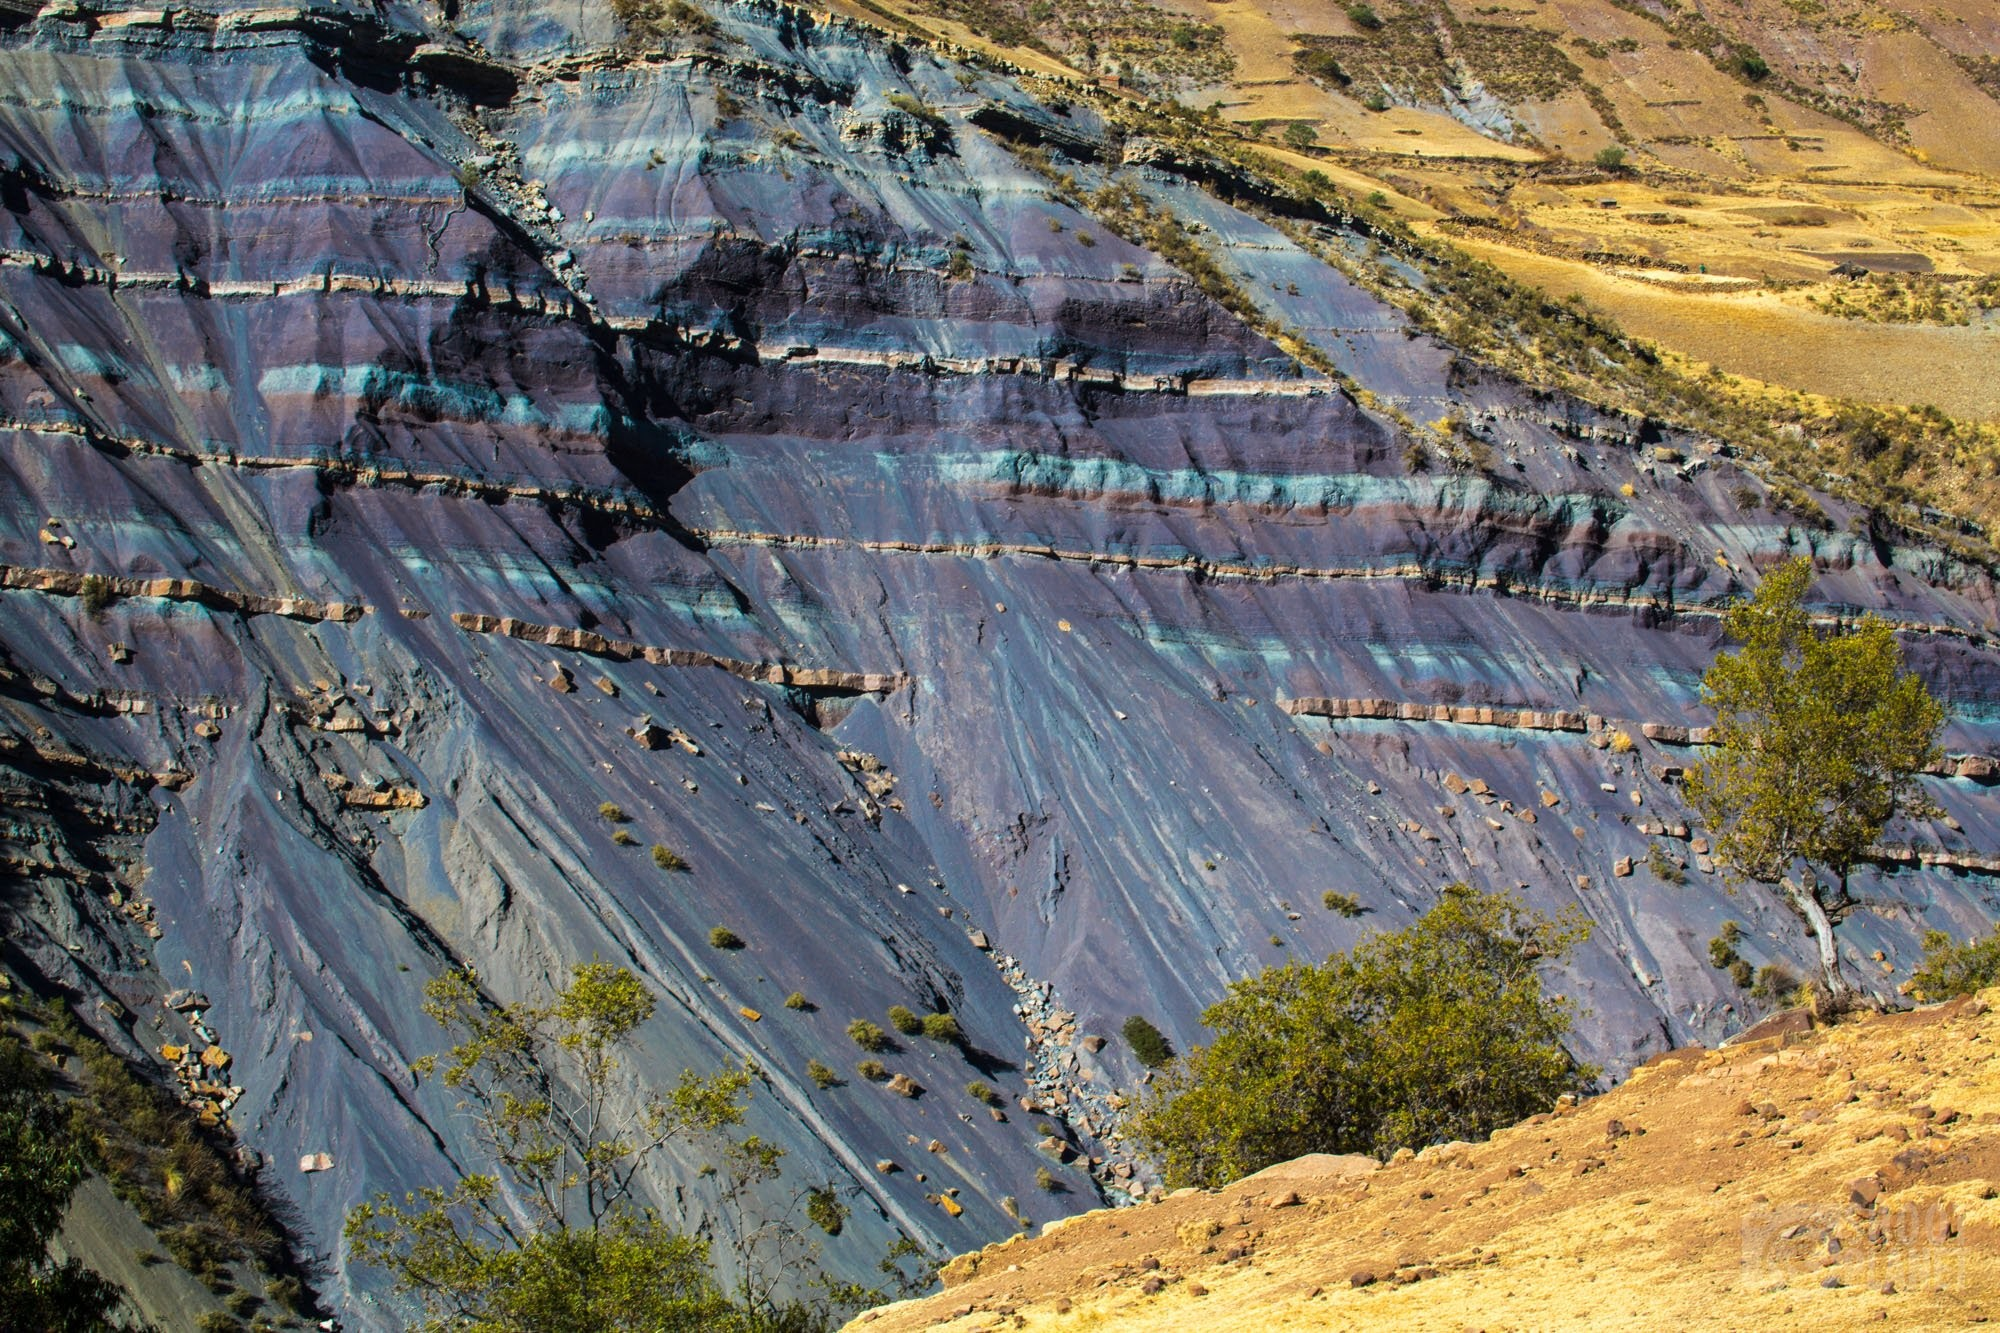 Maragua crater purple geological formations, Bolivia